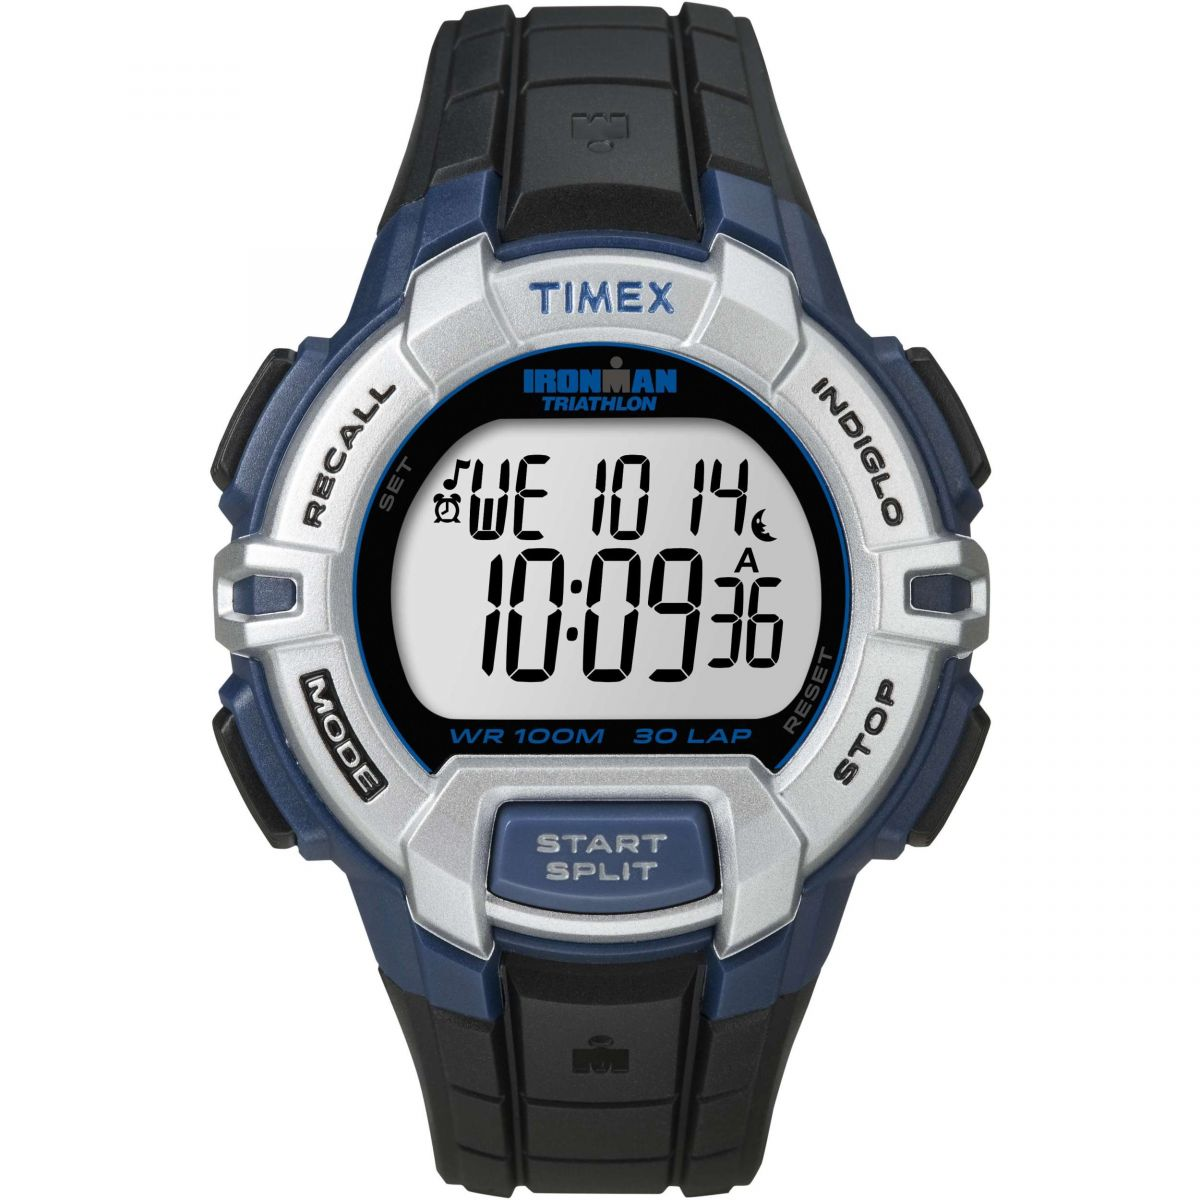 gents timex ironman alarm chronograph watch t5k791 watchshop com rh watchshop com timex ironman triathlon user manual timex ironman triathlon watch owner's manual